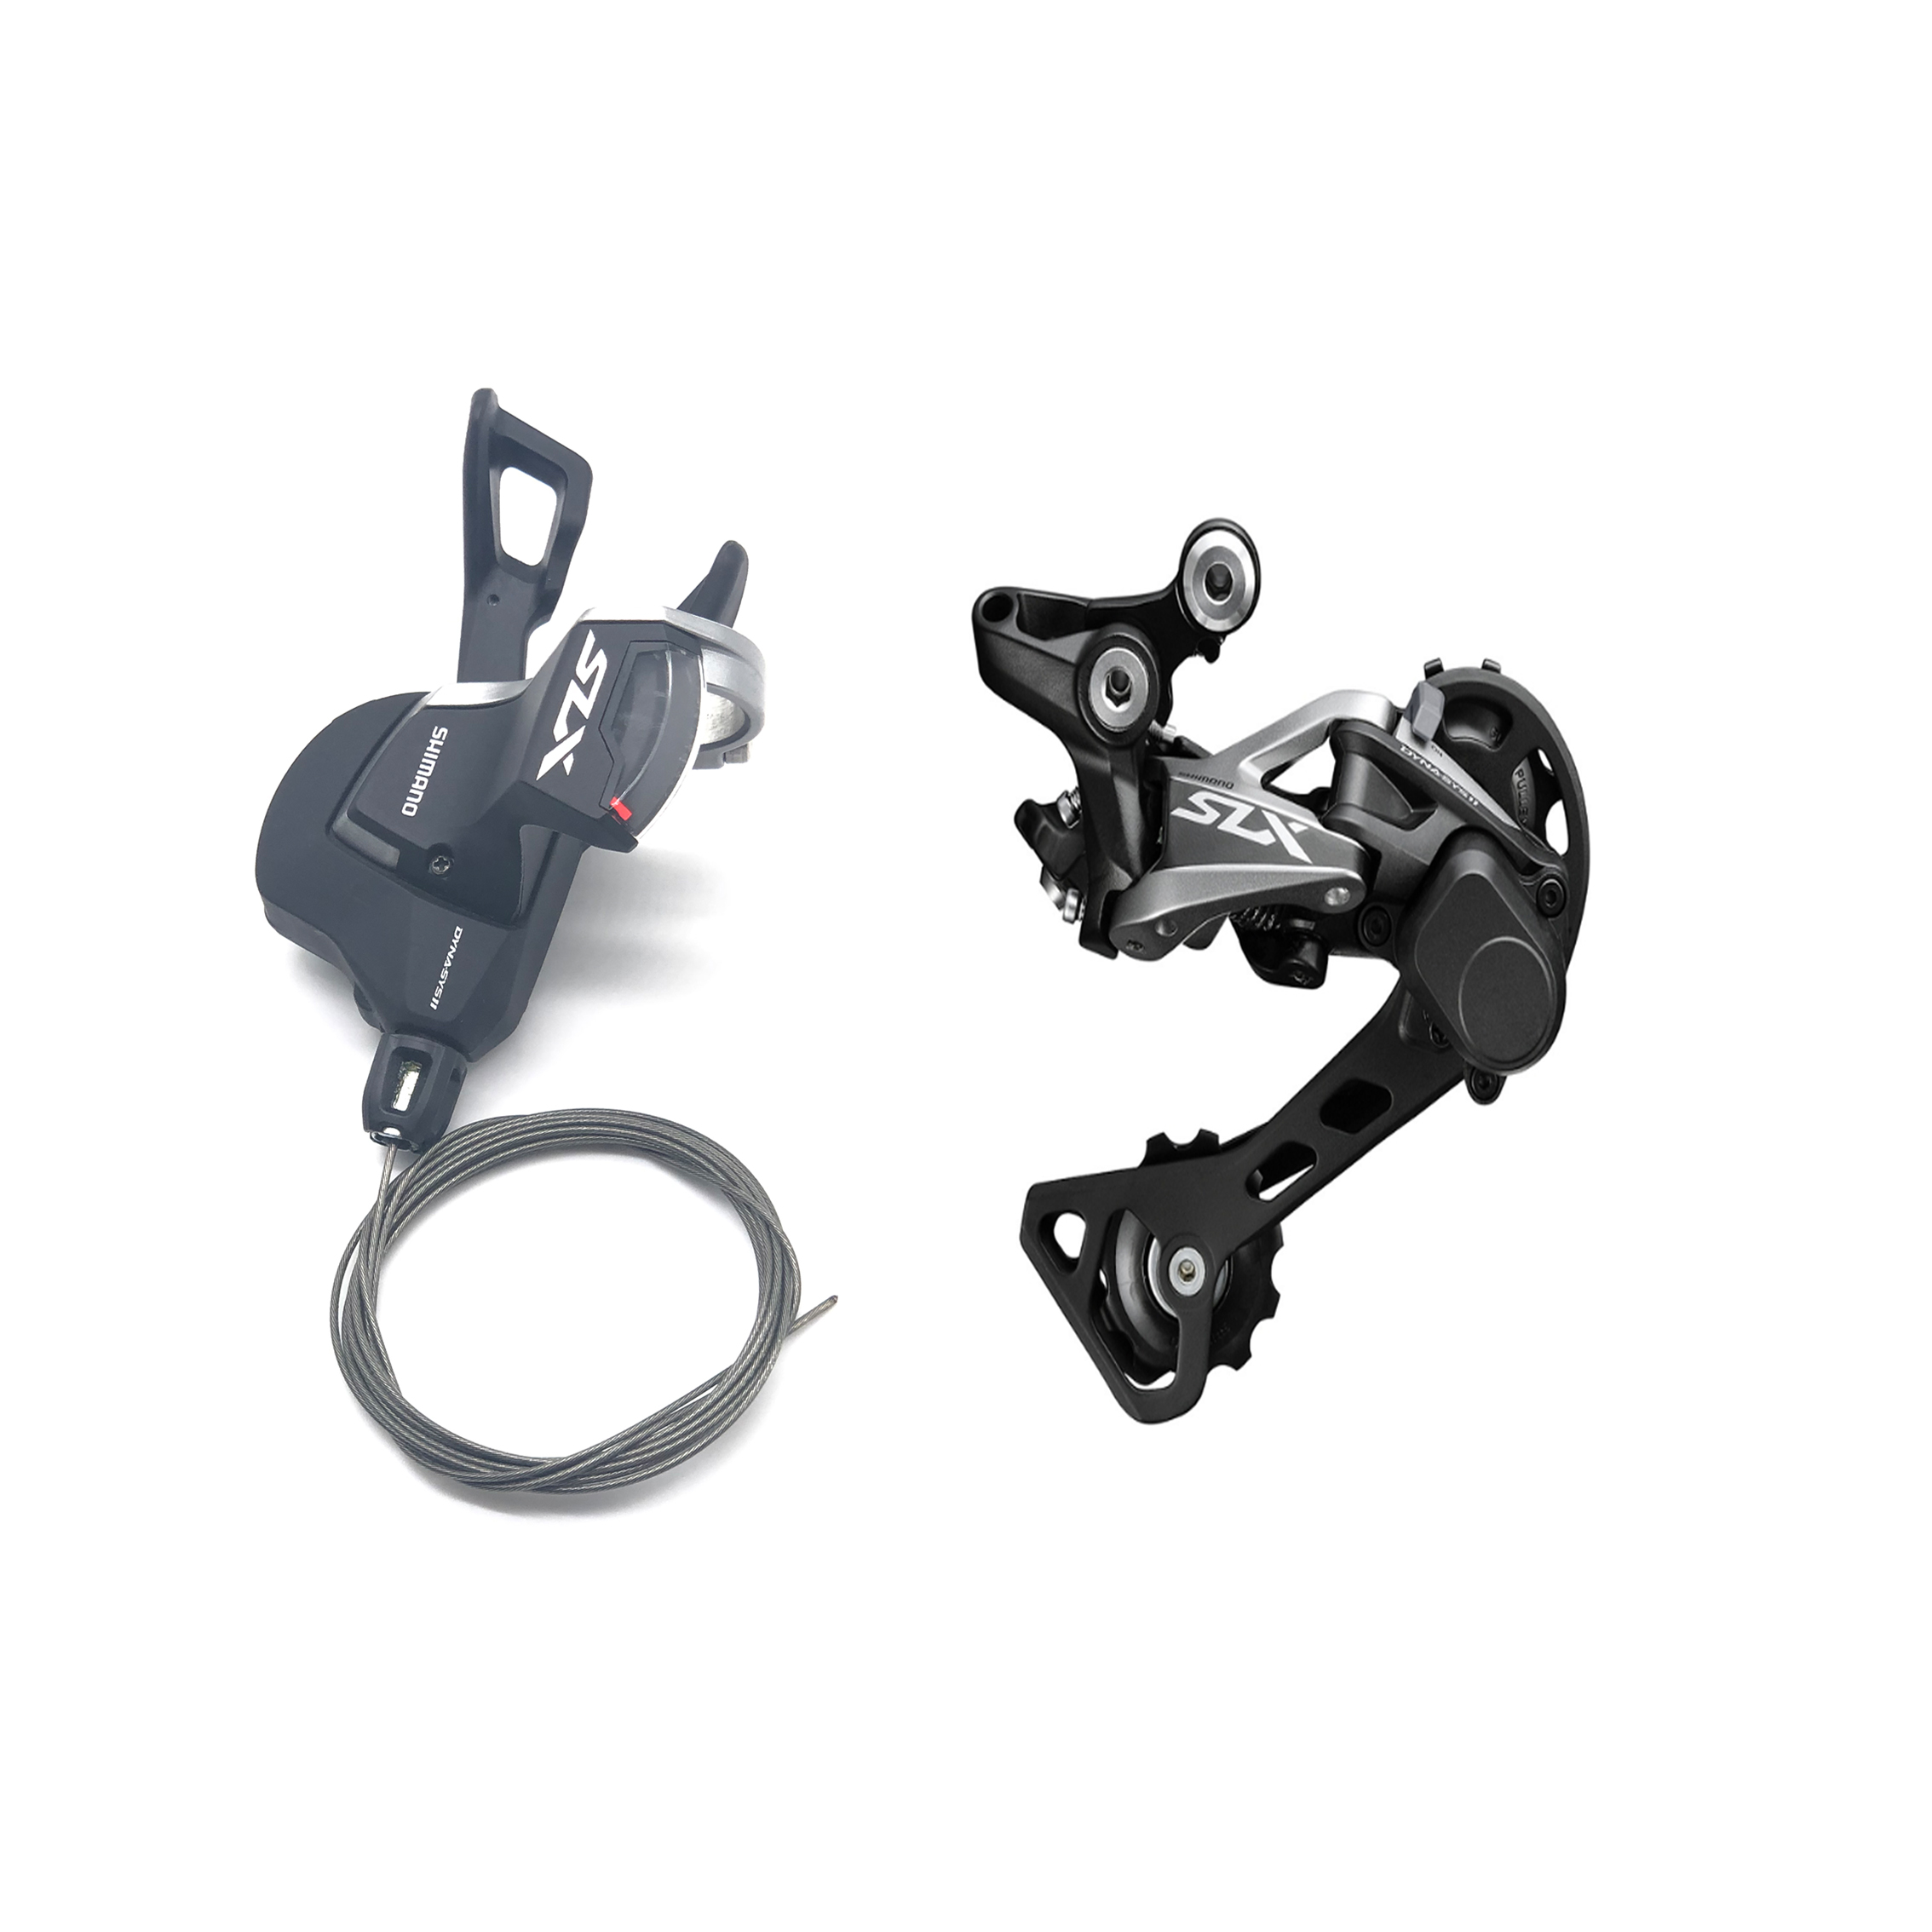 <font><b>Shimano</b></font> <font><b>SLX</b></font> <font><b>M7000</b></font> Right Shift Lever <font><b>11</b></font>-speed RD-<font><b>M7000</b></font>-SGS GS Long Cage Rear Medium Cage Rear Derailleur image